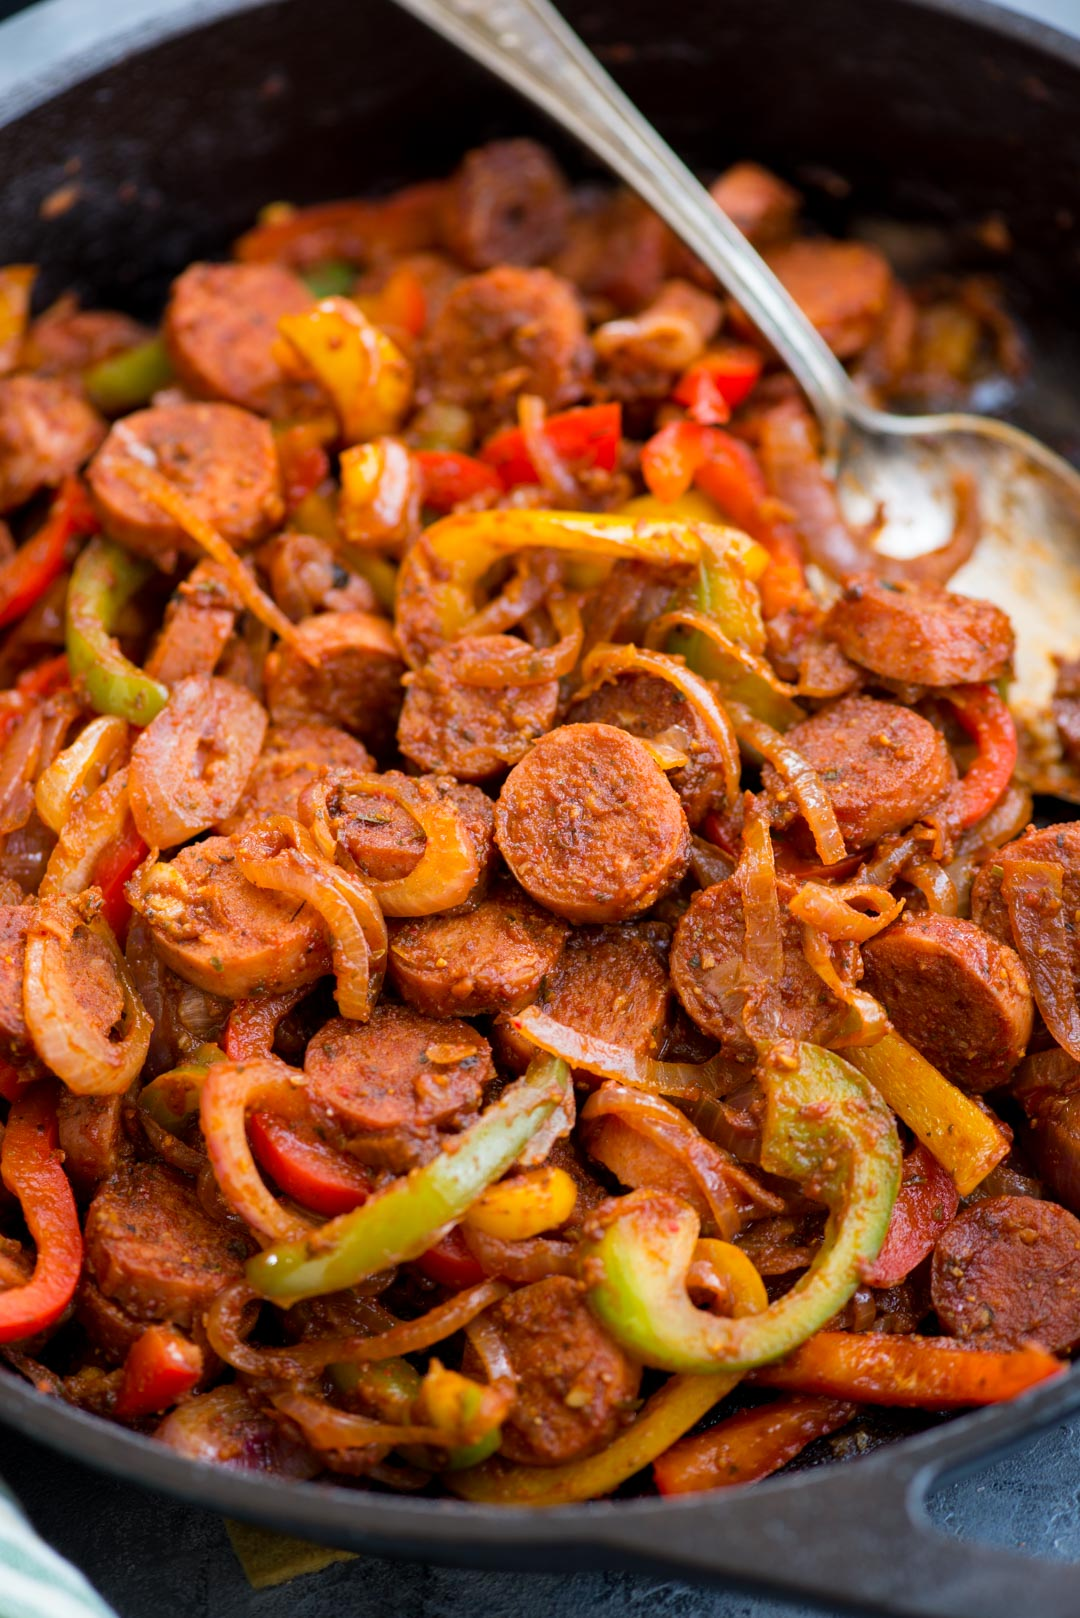 This Cajun Sausage and peppers skillet with caramelized onions, Crunchy peppers, is so flavourful. You need less than 30 minutes and one pan to make this dinner on a busy weeknight.